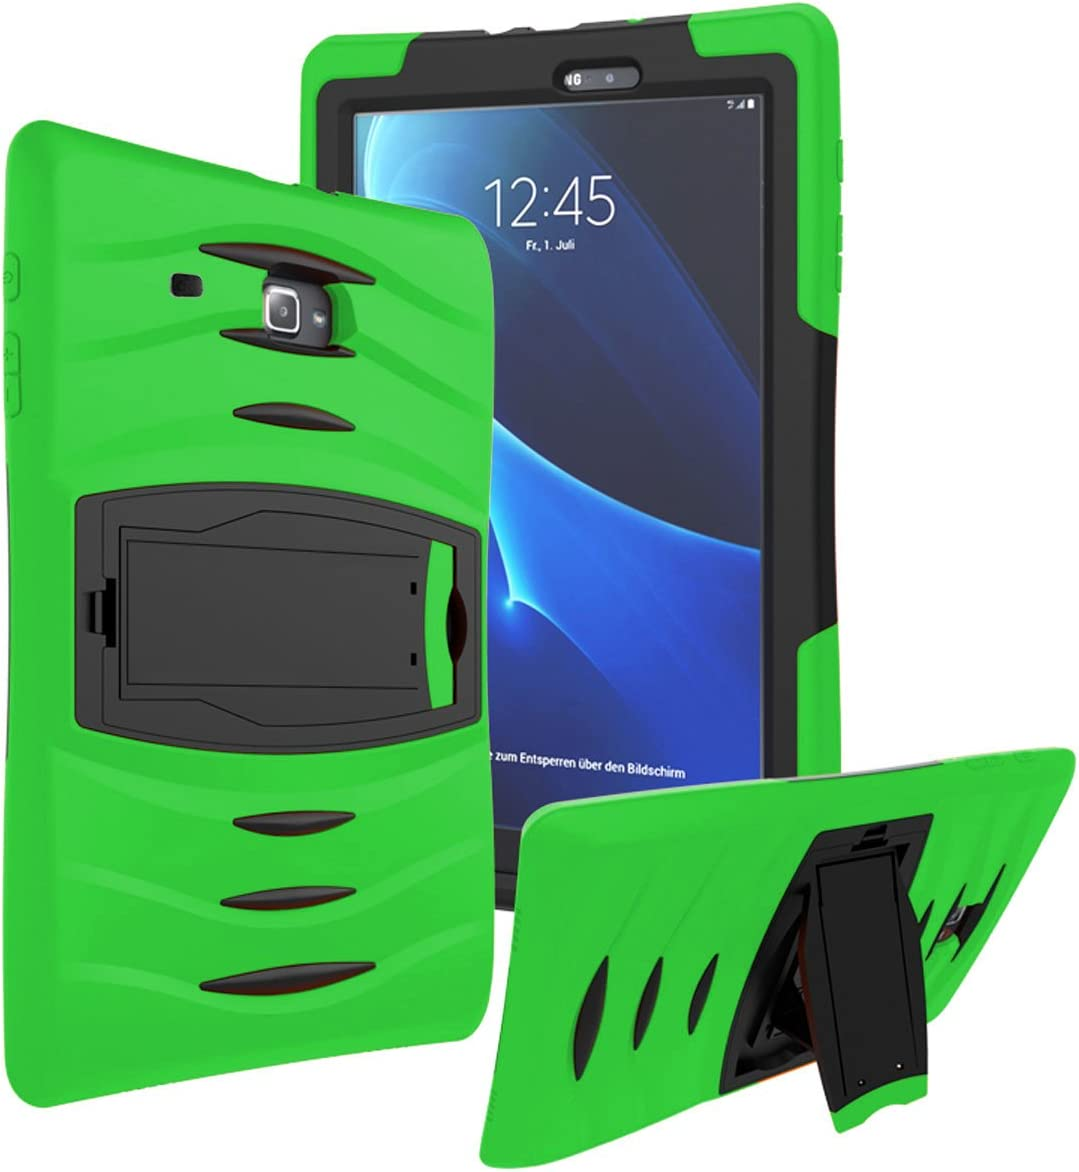 "Galaxy Tab E 7.0 Lite Case SM-T113, KIQ Shockproof Heavy Duty Case, Kickstand, Screen Protector Cover, for Samsung Galaxy Tab E 7.0"" / Tab 3 Lite 7-inch T110/T113/T116/T111 (Armor Green)"